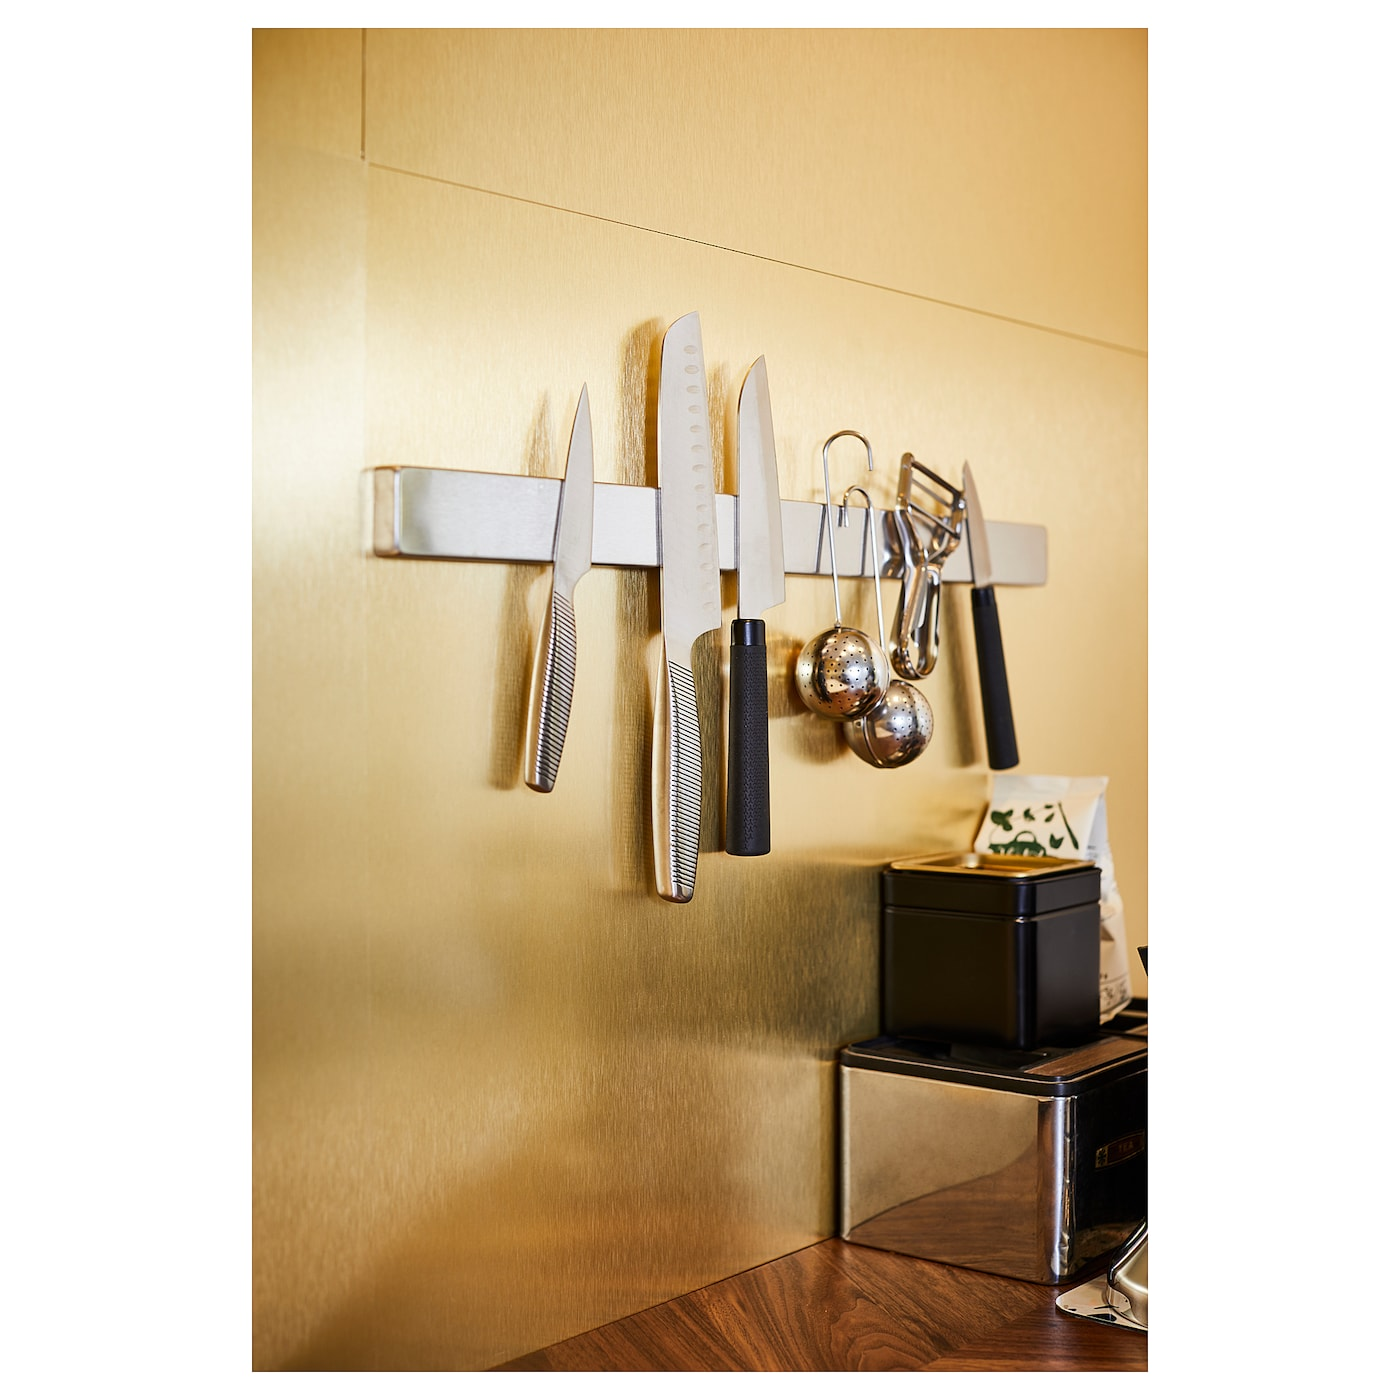 KUNGSFORS magnetic knife rack stainless steel 56 cm